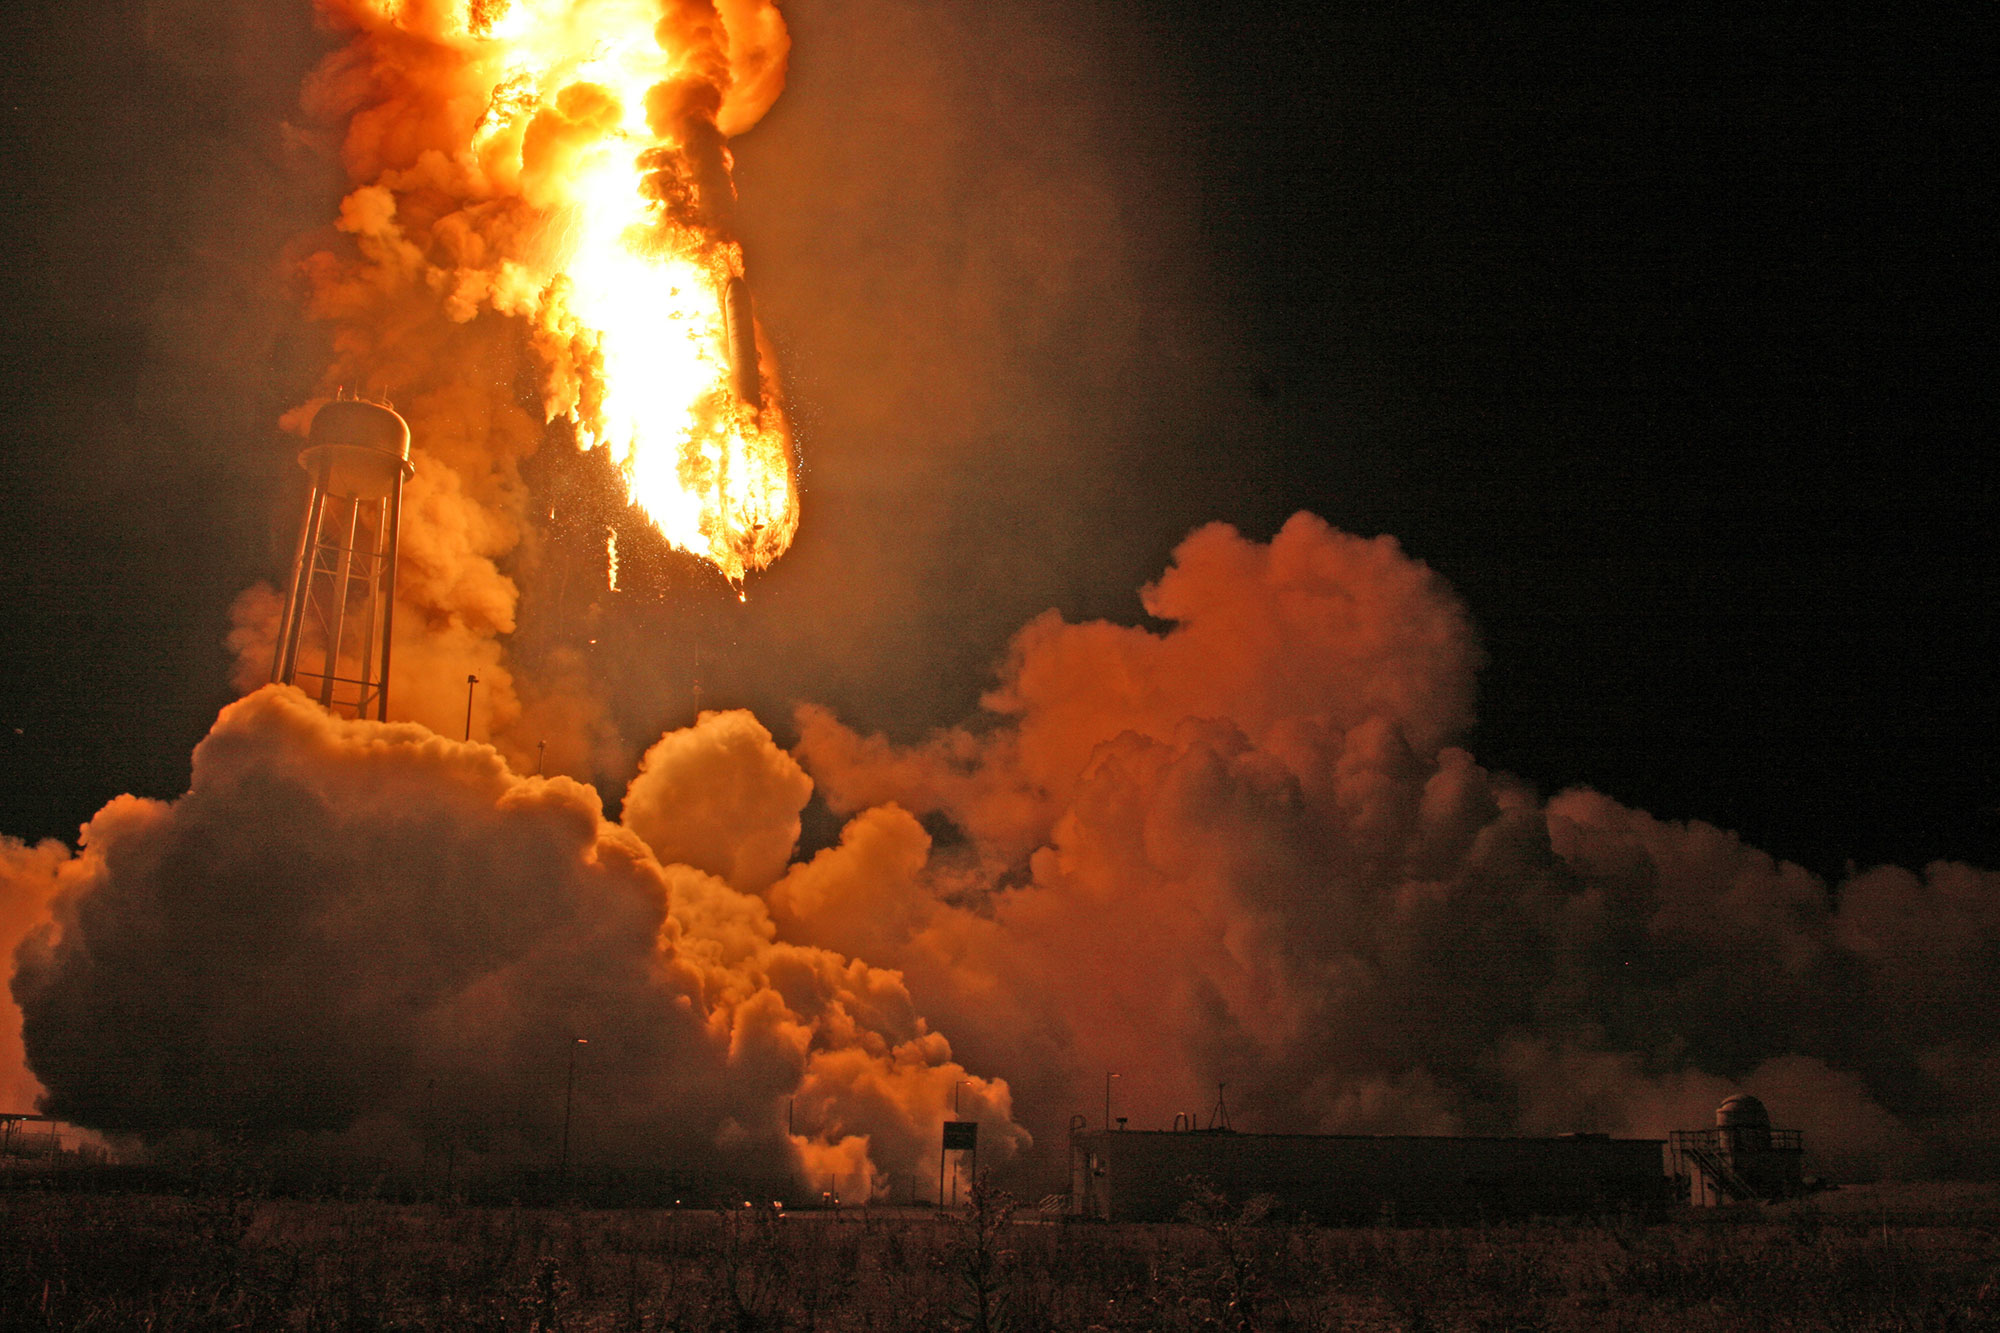 An Orbital Sciences Antares rocket descended into hellish inferno after the first stage propulsion system exploded moments after liftoff from the NASA's Wallops Flight Facility along the Atlantic seaboard in Virginia. Credit: Ken Kremer